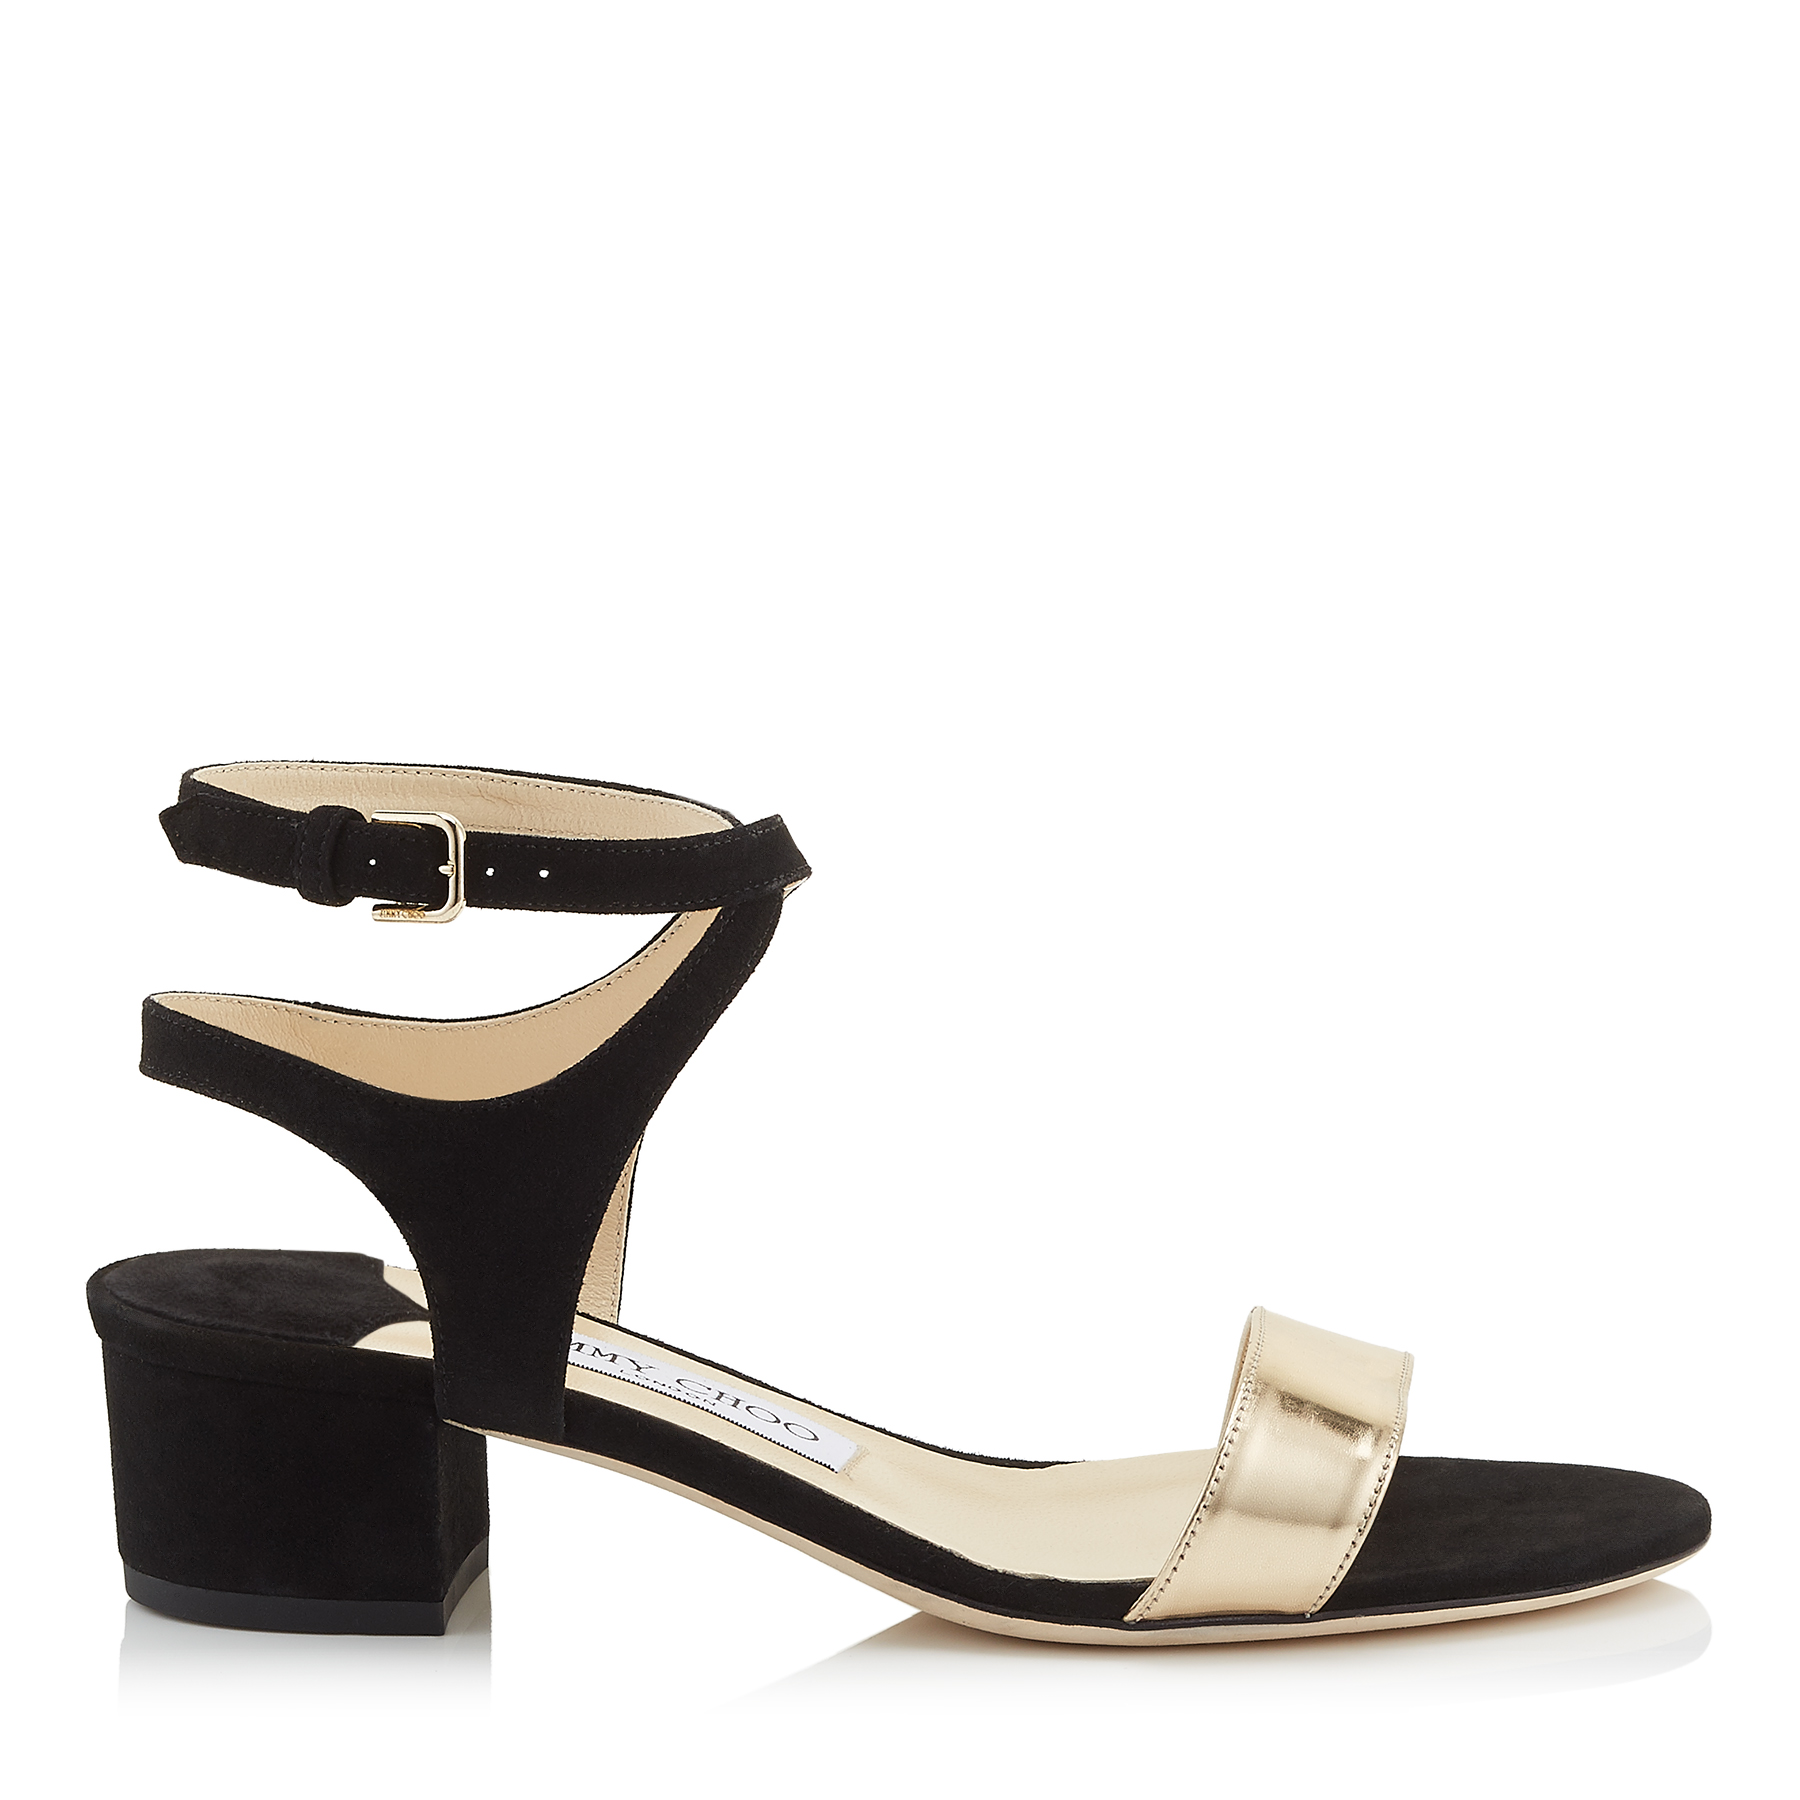 MARINE 35 Black Suede and Dore Mirror Leather Sandals